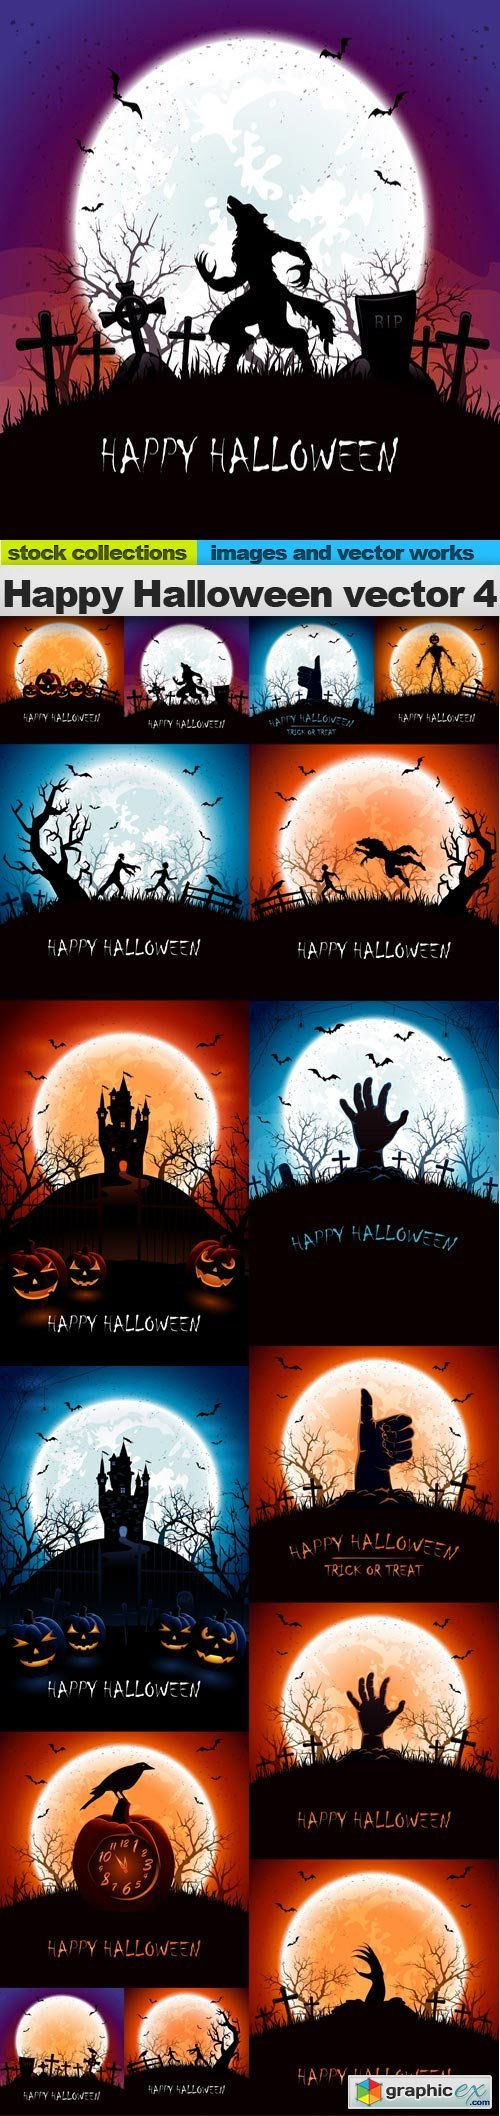 Happy Halloween vector 4, 15 x EPS